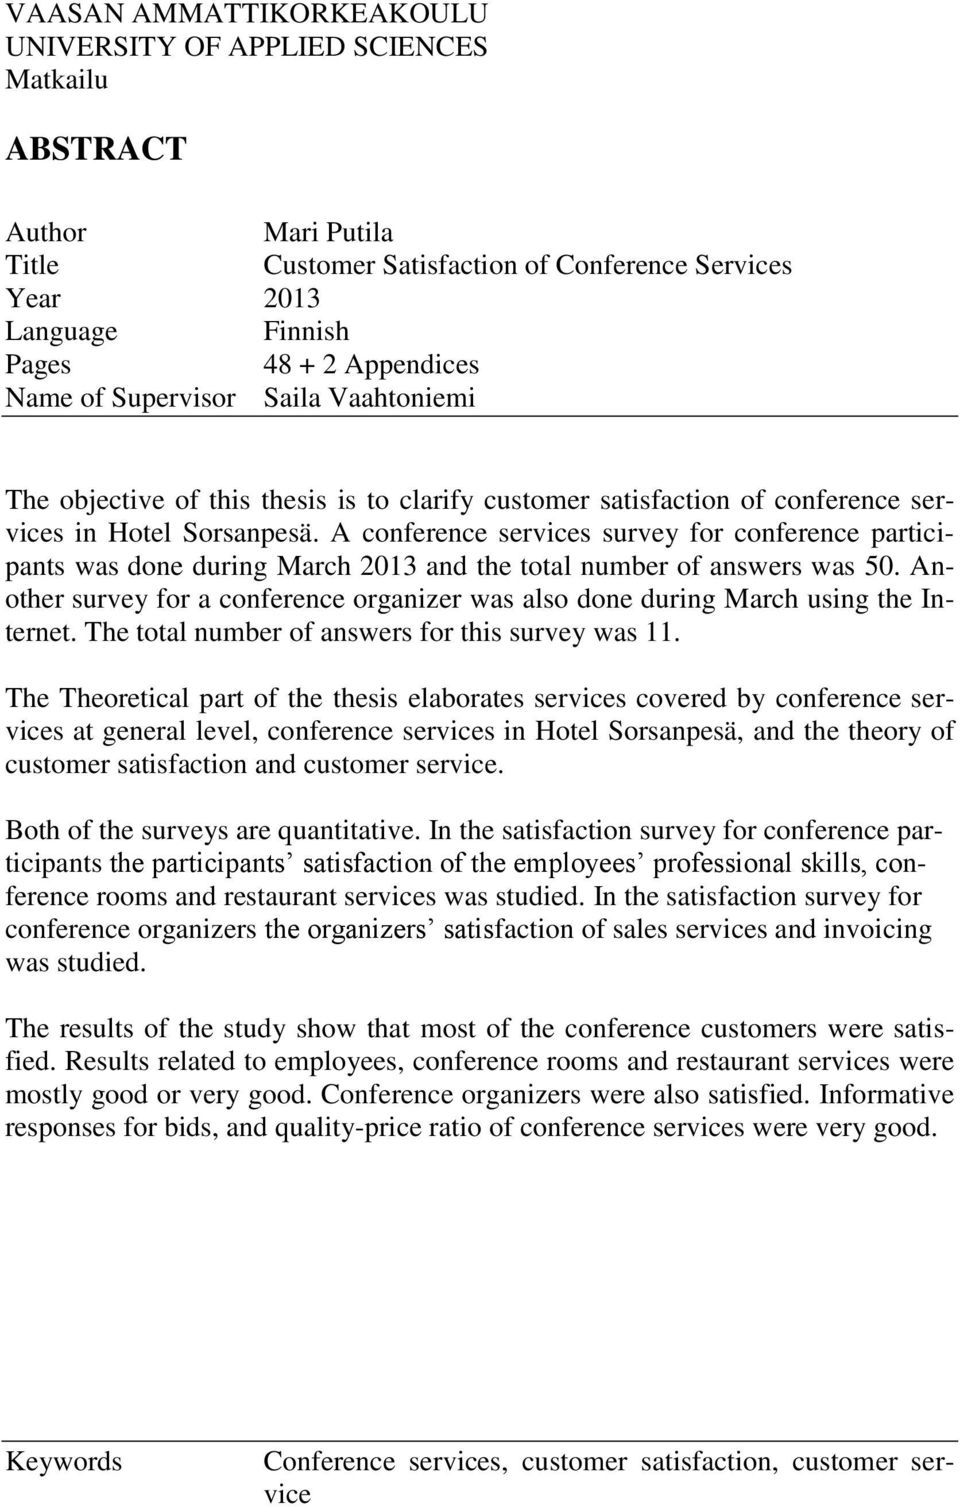 A conference services survey for conference participants was done during March 2013 and the total number of answers was 50.